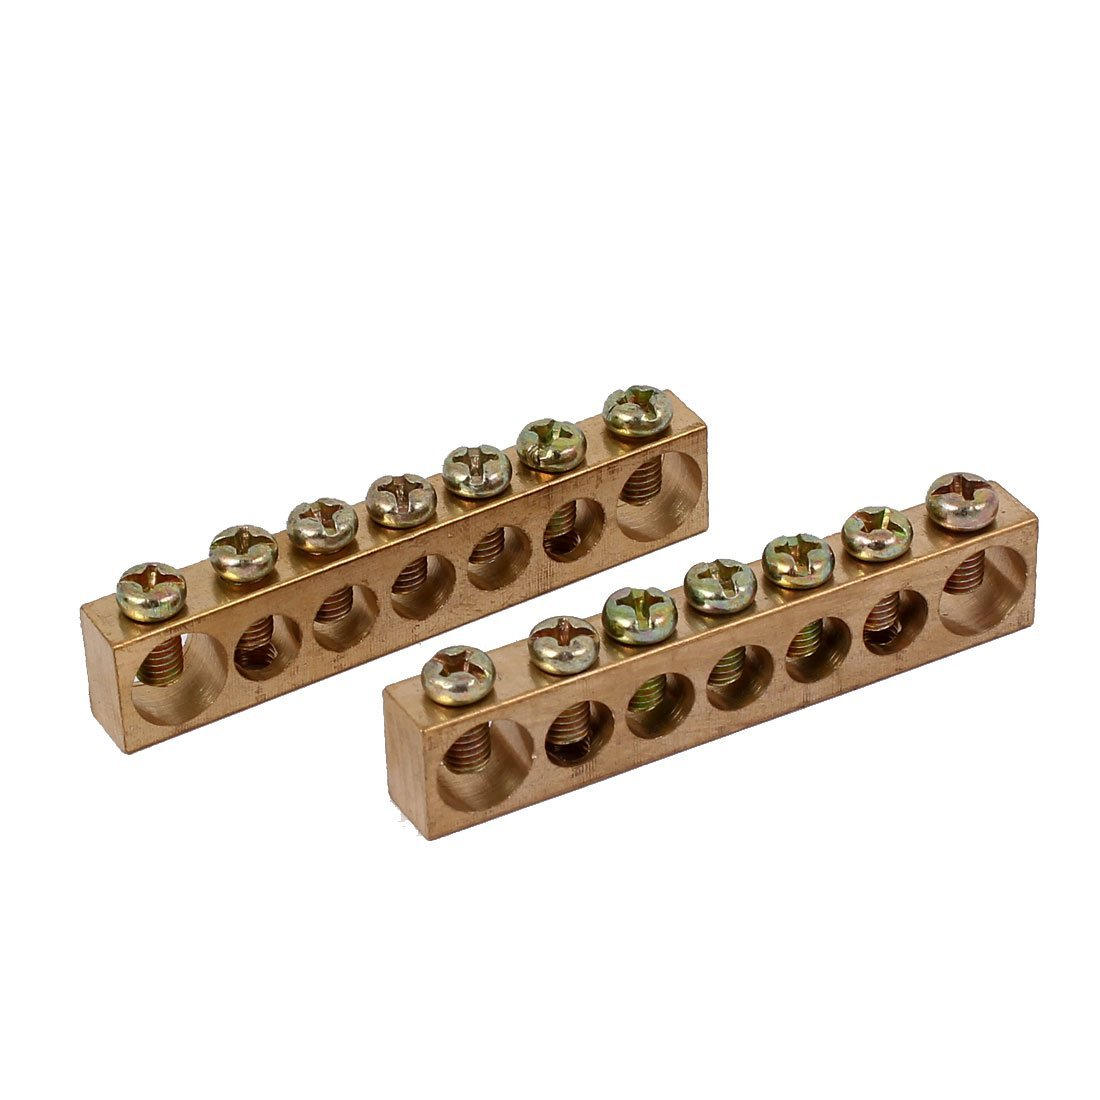 uxcell 7 Positions 7mm 10mm Dia Wire Screw Terminal Ground Copper Neutral Bar 2pcs